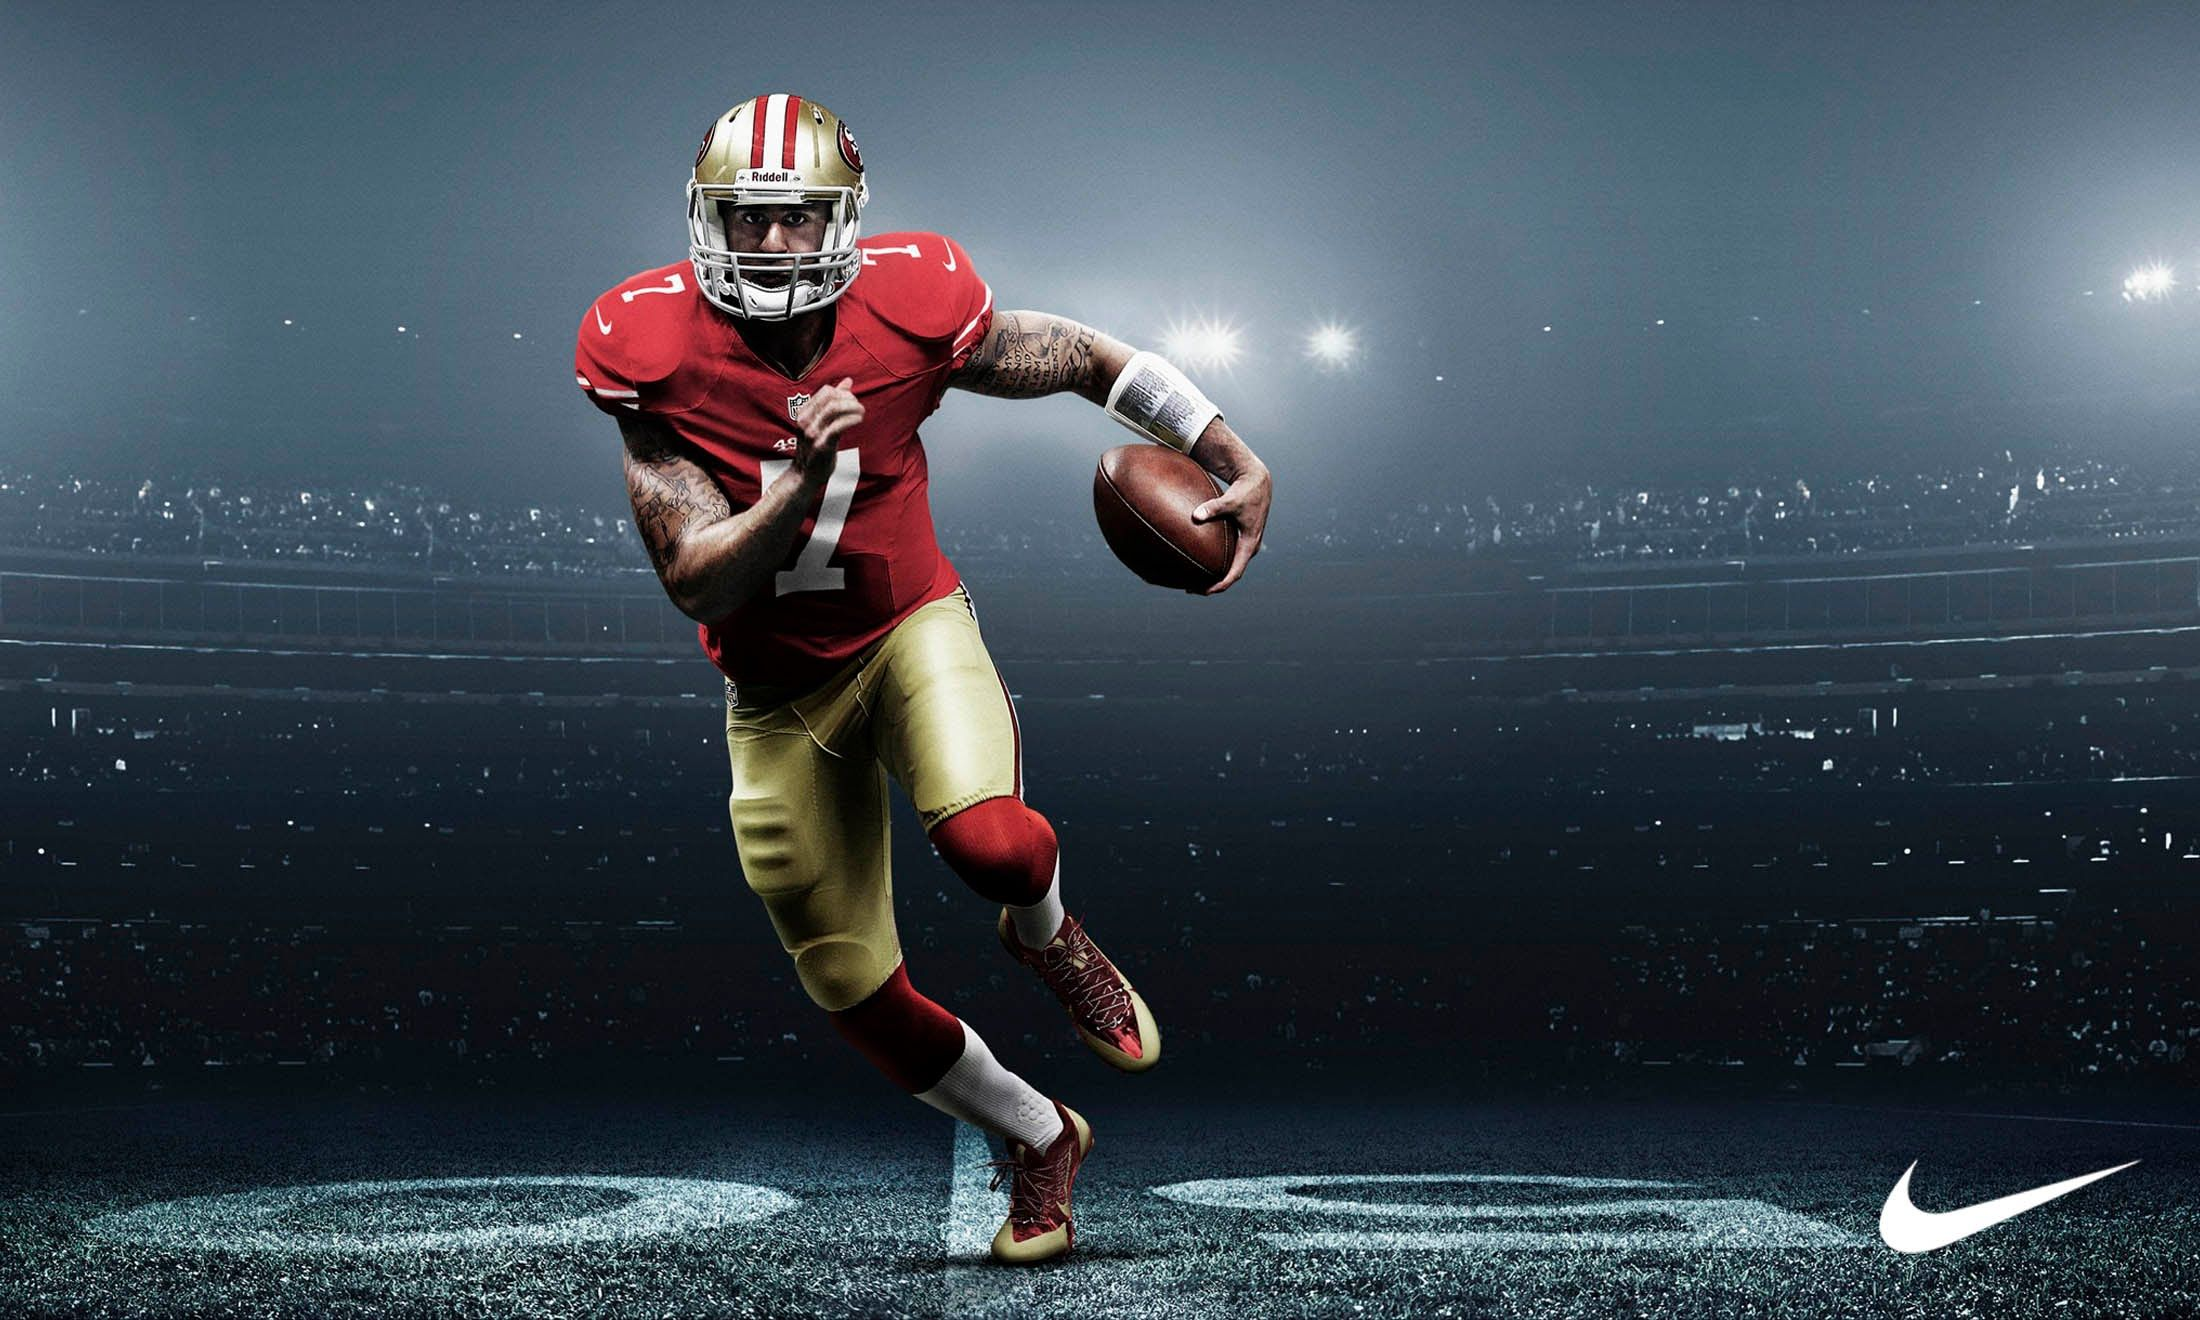 Football Player 7 San Francisco 49ers Nike Nfl Football Wallpaper San Francisco 49ers Nfl Players